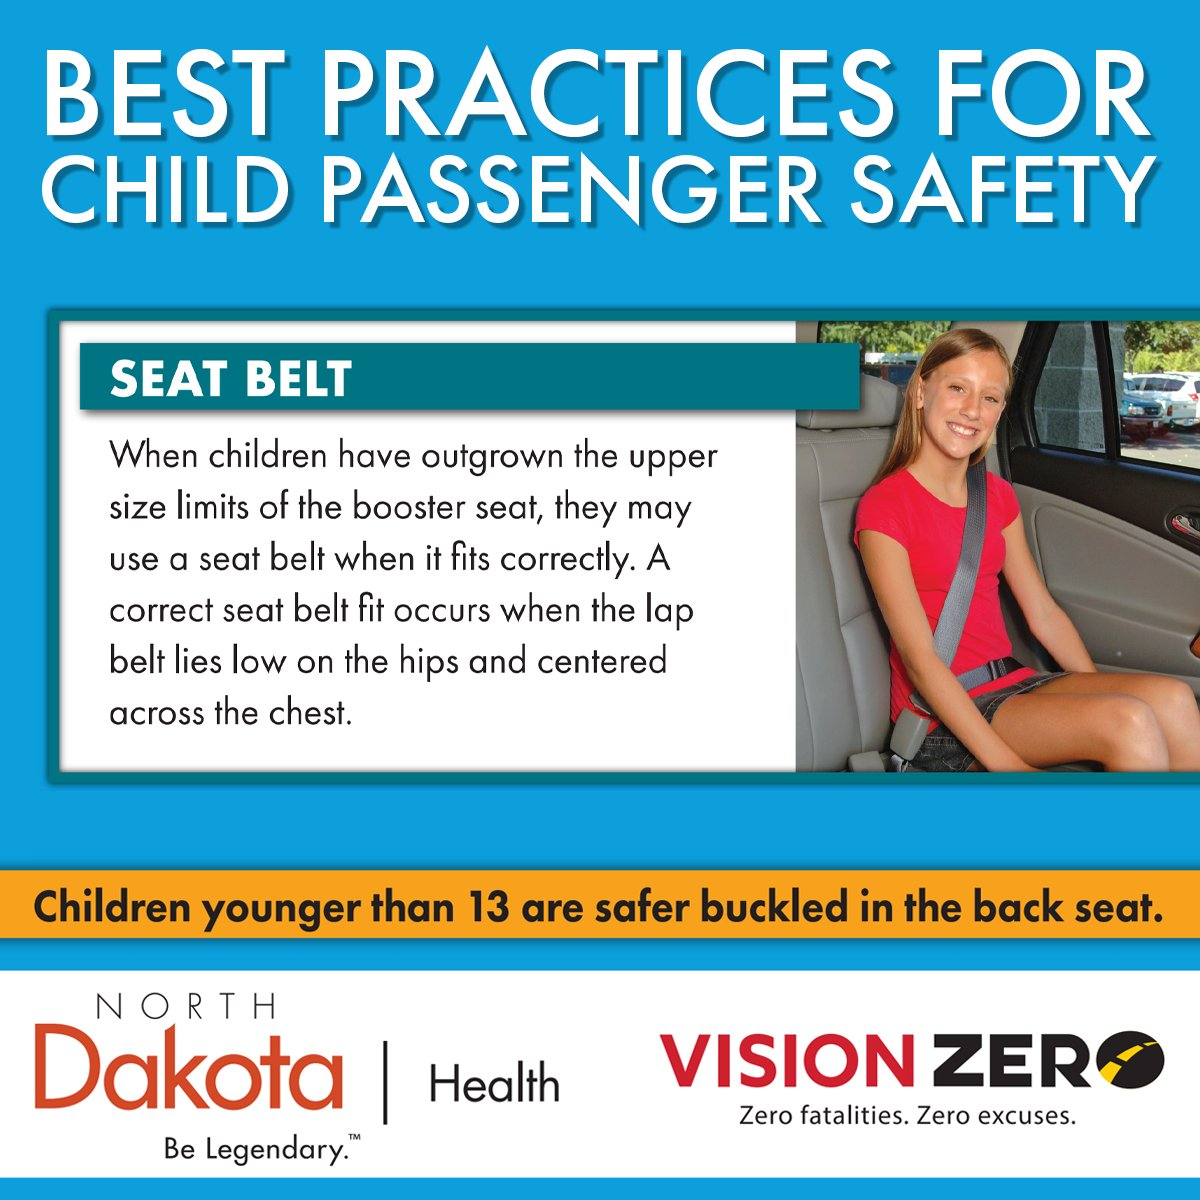 The right car seat is important for your child! Is your child ready to graduate from a booster seat to only needing a seat belt? #ChildPassengerSafetyWeek  Find out here: